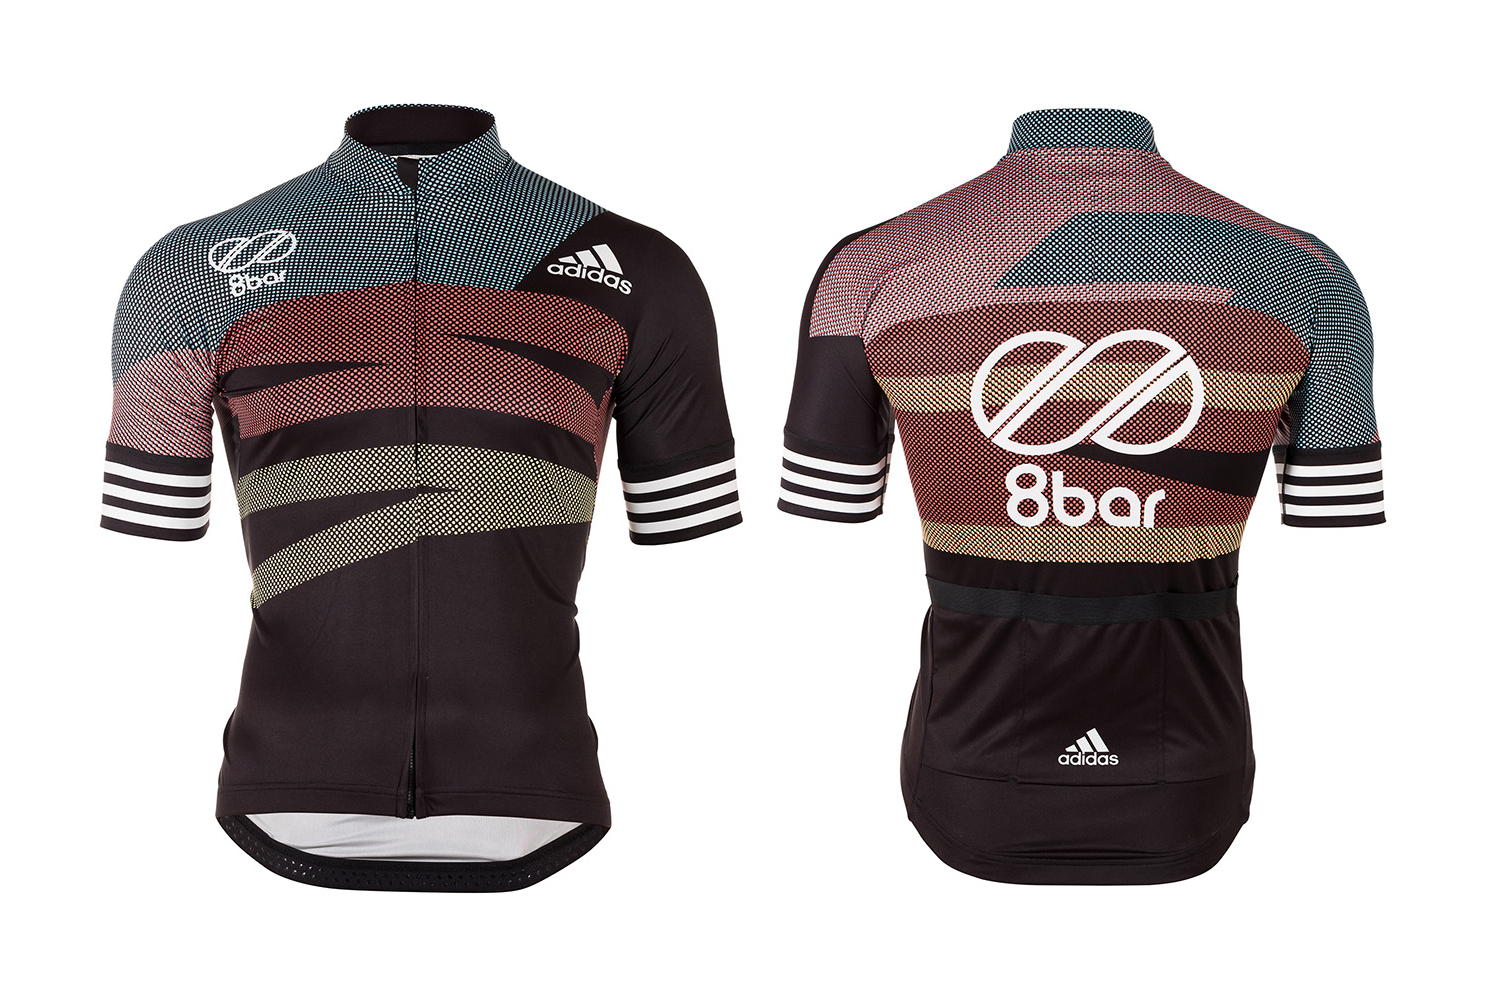 8bar team apparel team jersey replica - 8bar team apparel - available now!